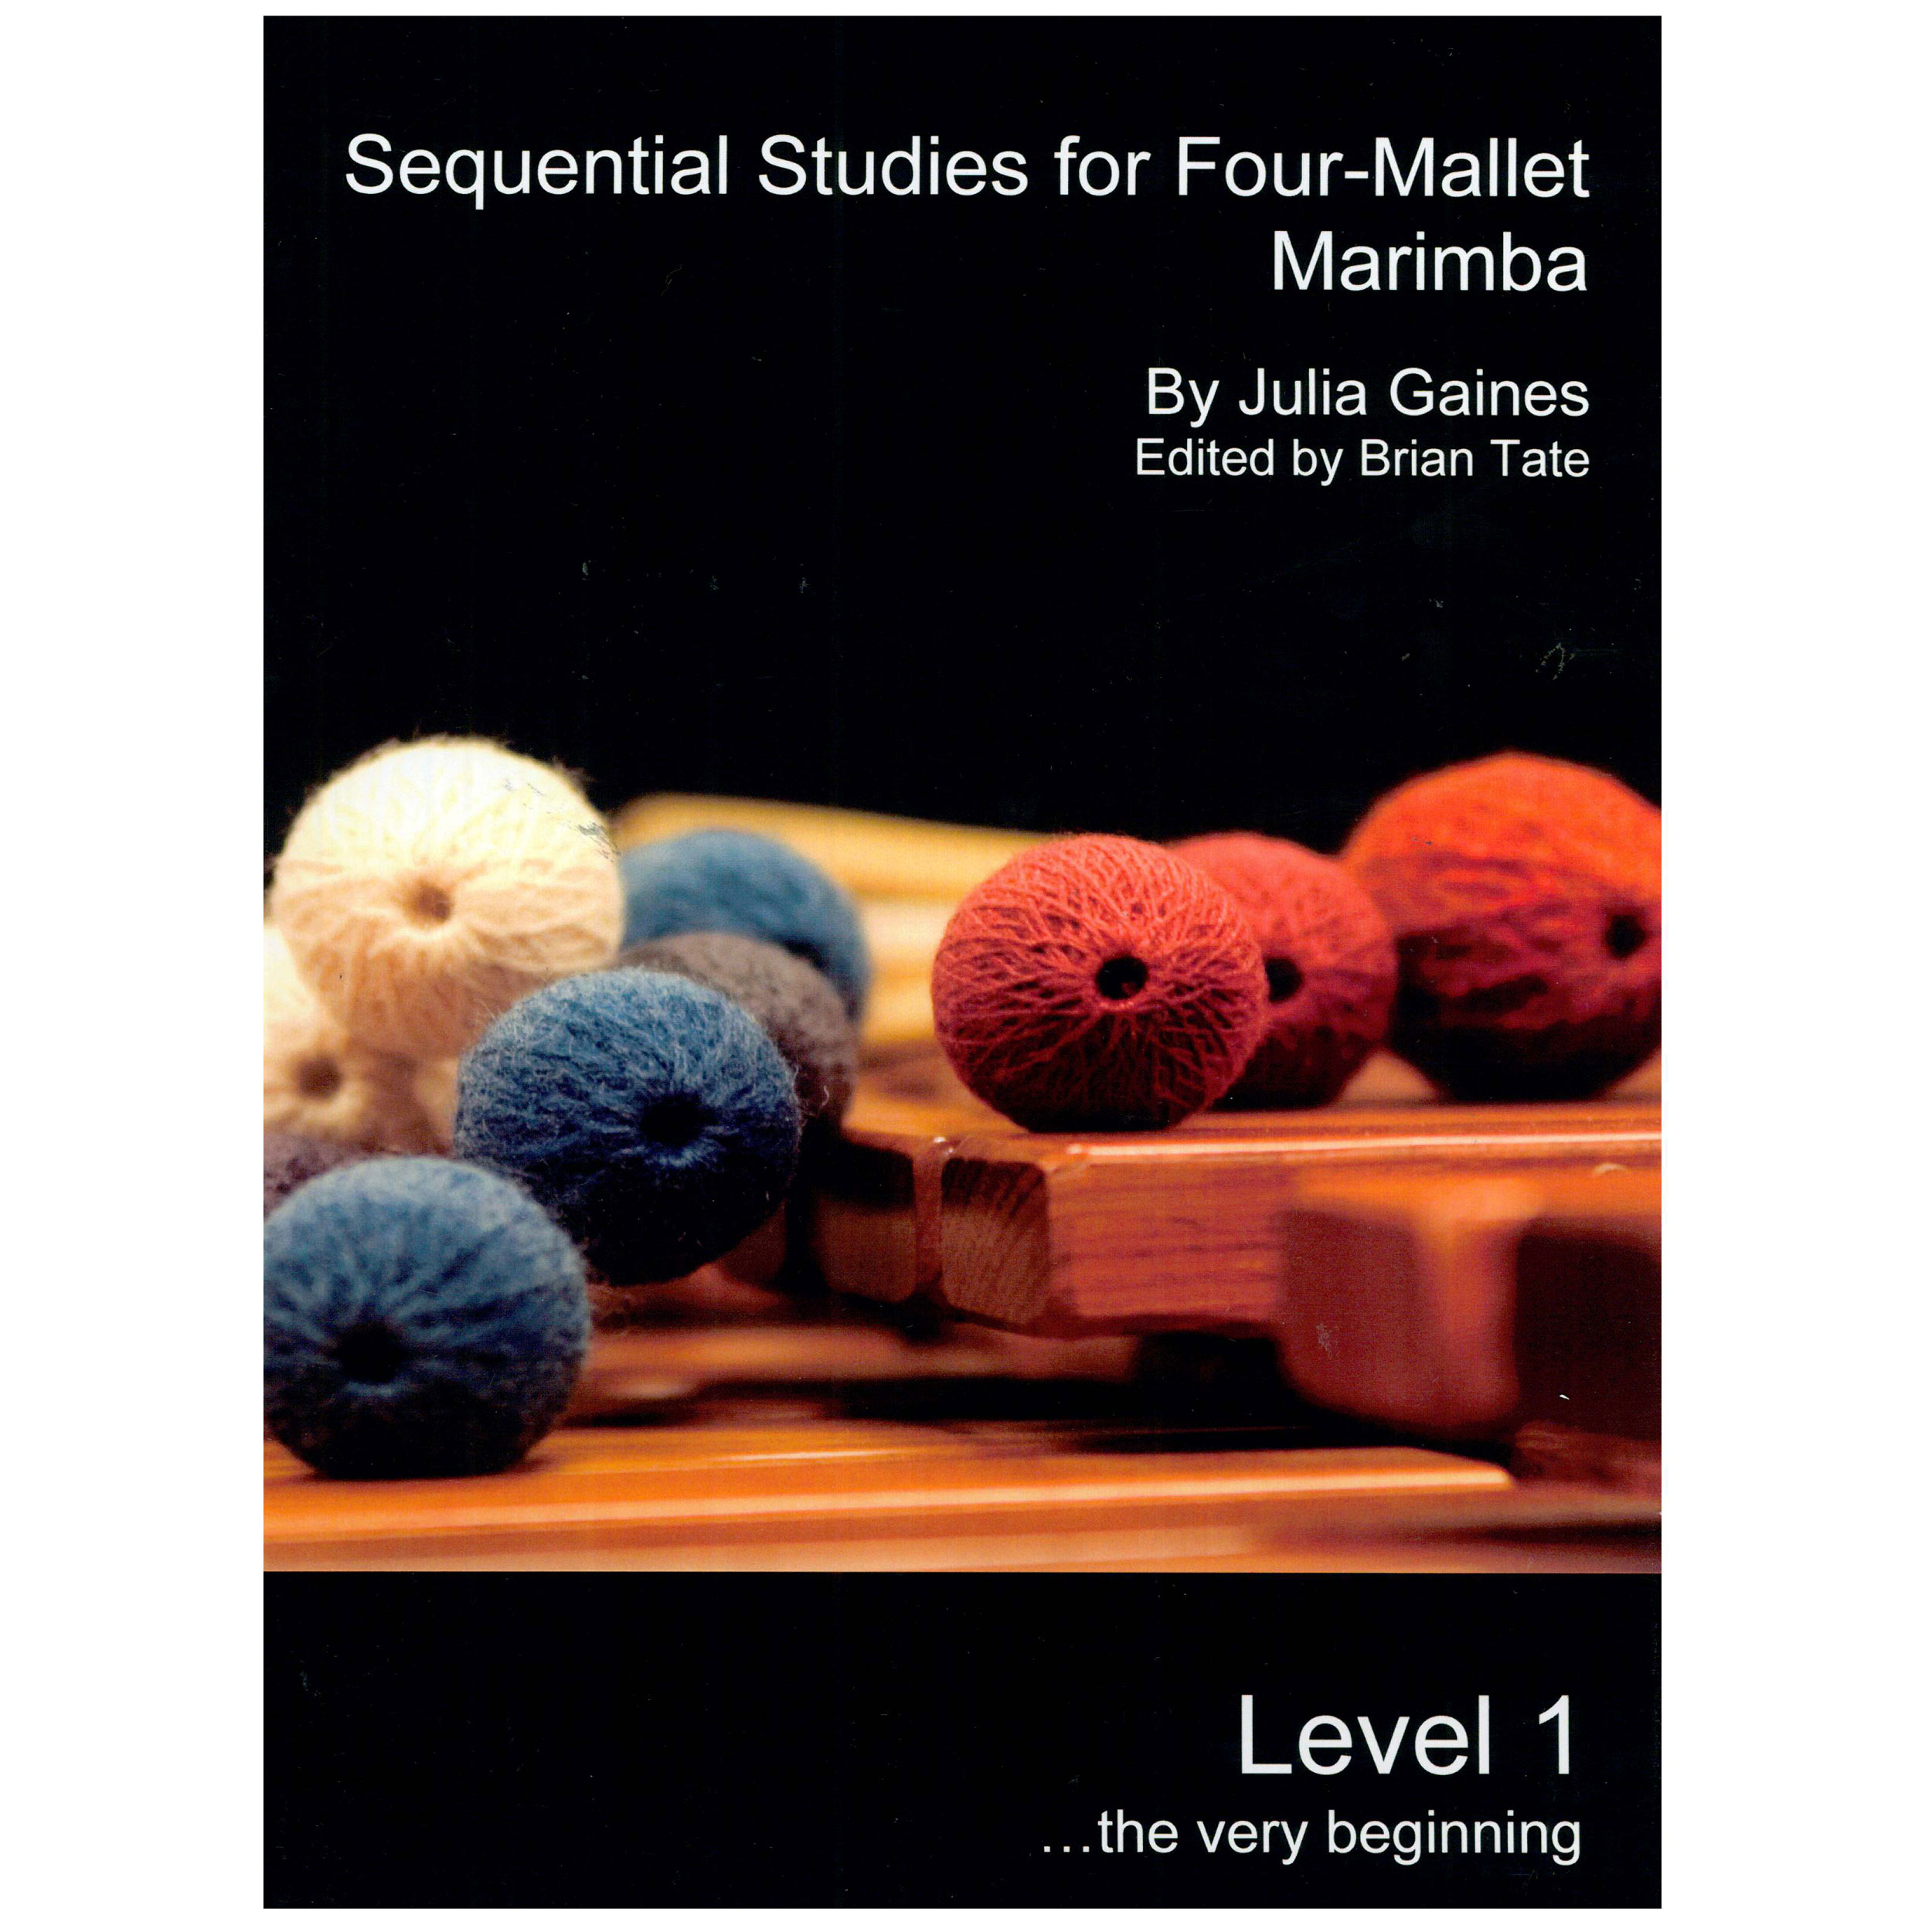 Sequential Studies for Four-Mallet Marimba - Level 1 by Julia Gaines